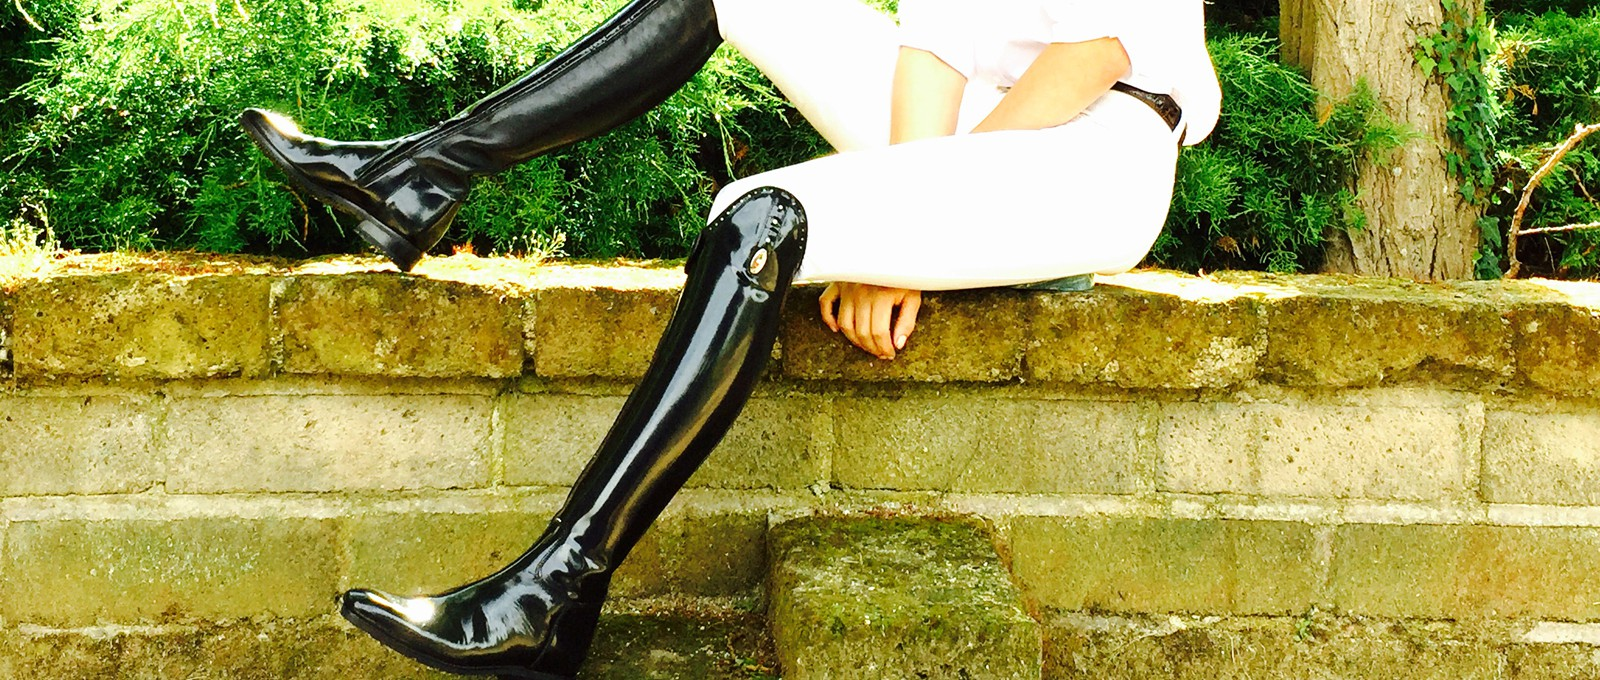 Made to Measure Luxury Riding Boots by EquiClass